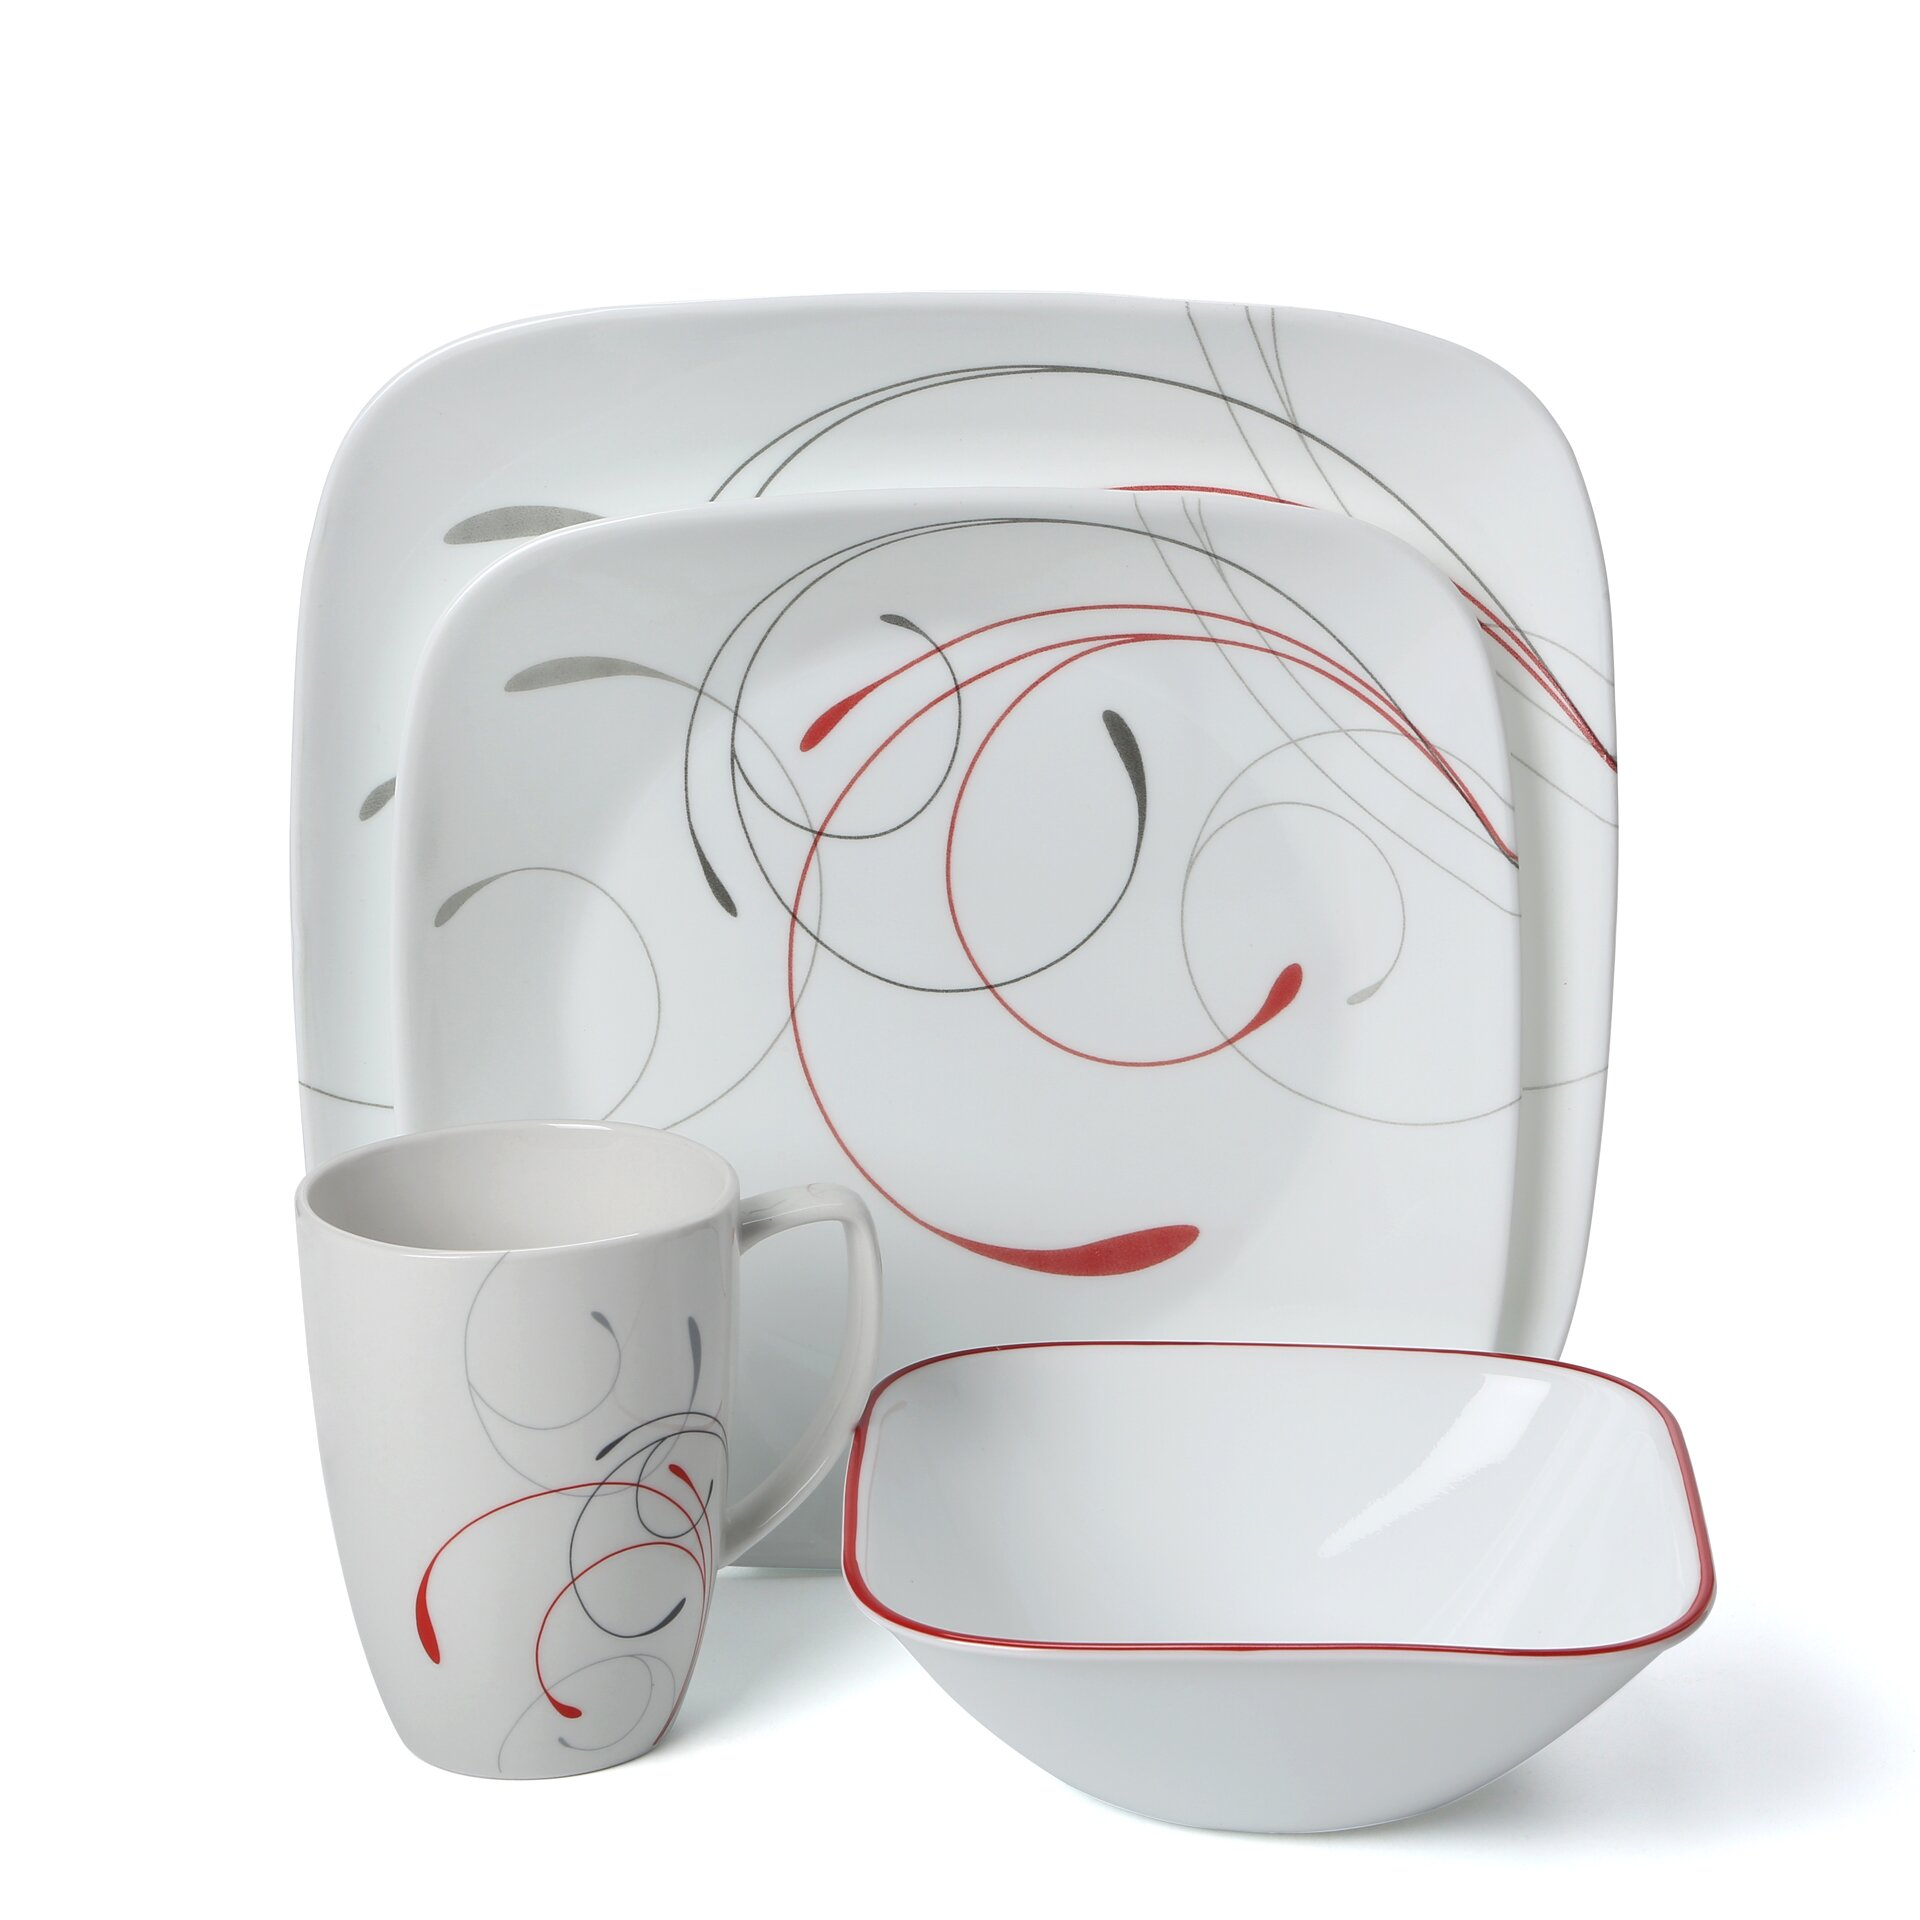 I bought Corelle thinking it was safe dishware to have in my home. Its lovely, lightweight and cleans easily. I would not recommend this product even if it was free anymore.